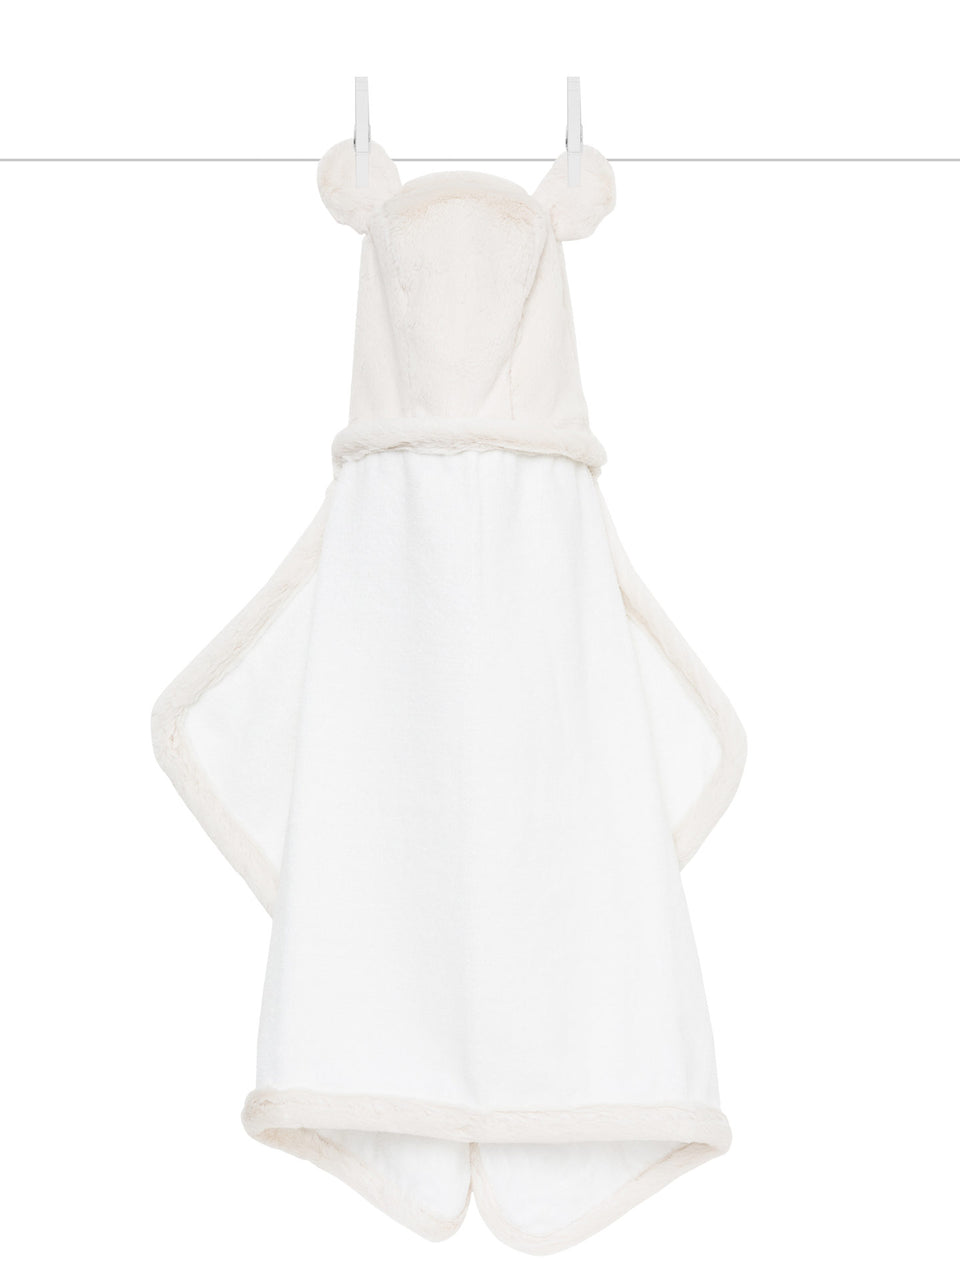 Luxe Baby Towel - Cream